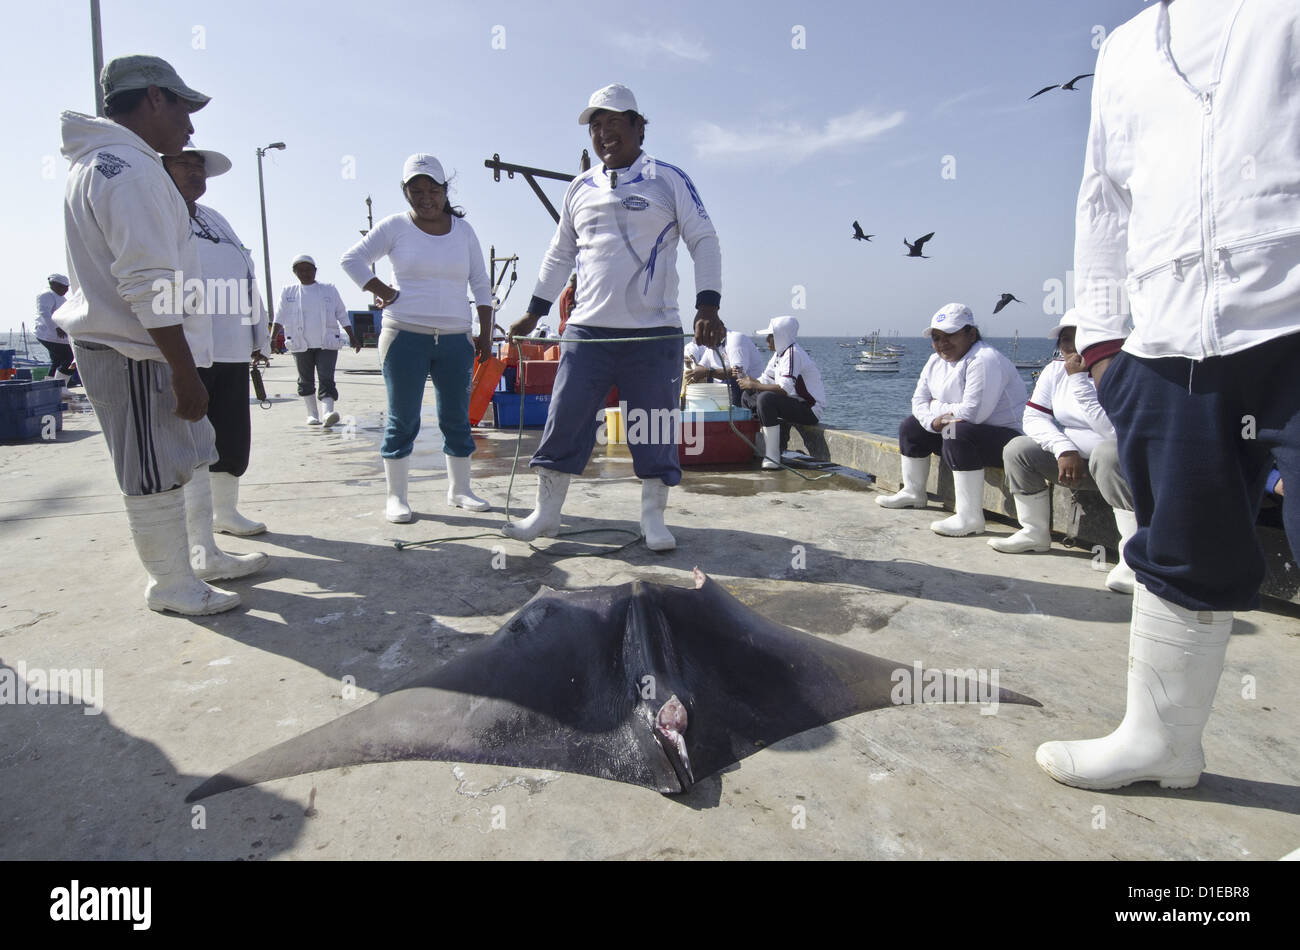 Peruvian mobula catch in the artesanal fishery in Peru, the fisheries are well funded by the Peruvian government, - Stock Image